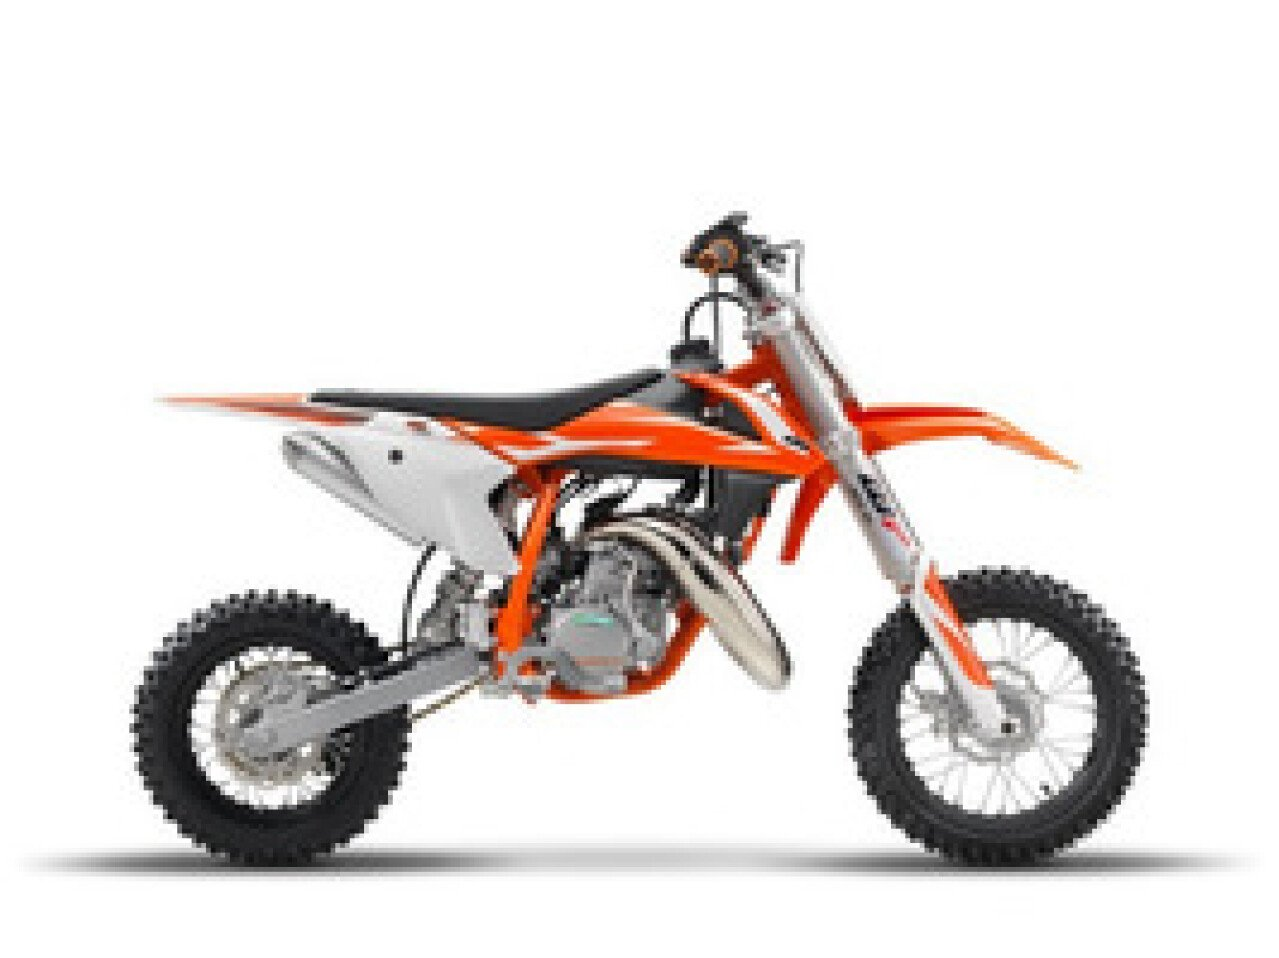 Ktm Motorcycles For Sale Fresno Ca >> 2018 Ktm 50sx For Sale Near Fresno California 93710 Motorcycles